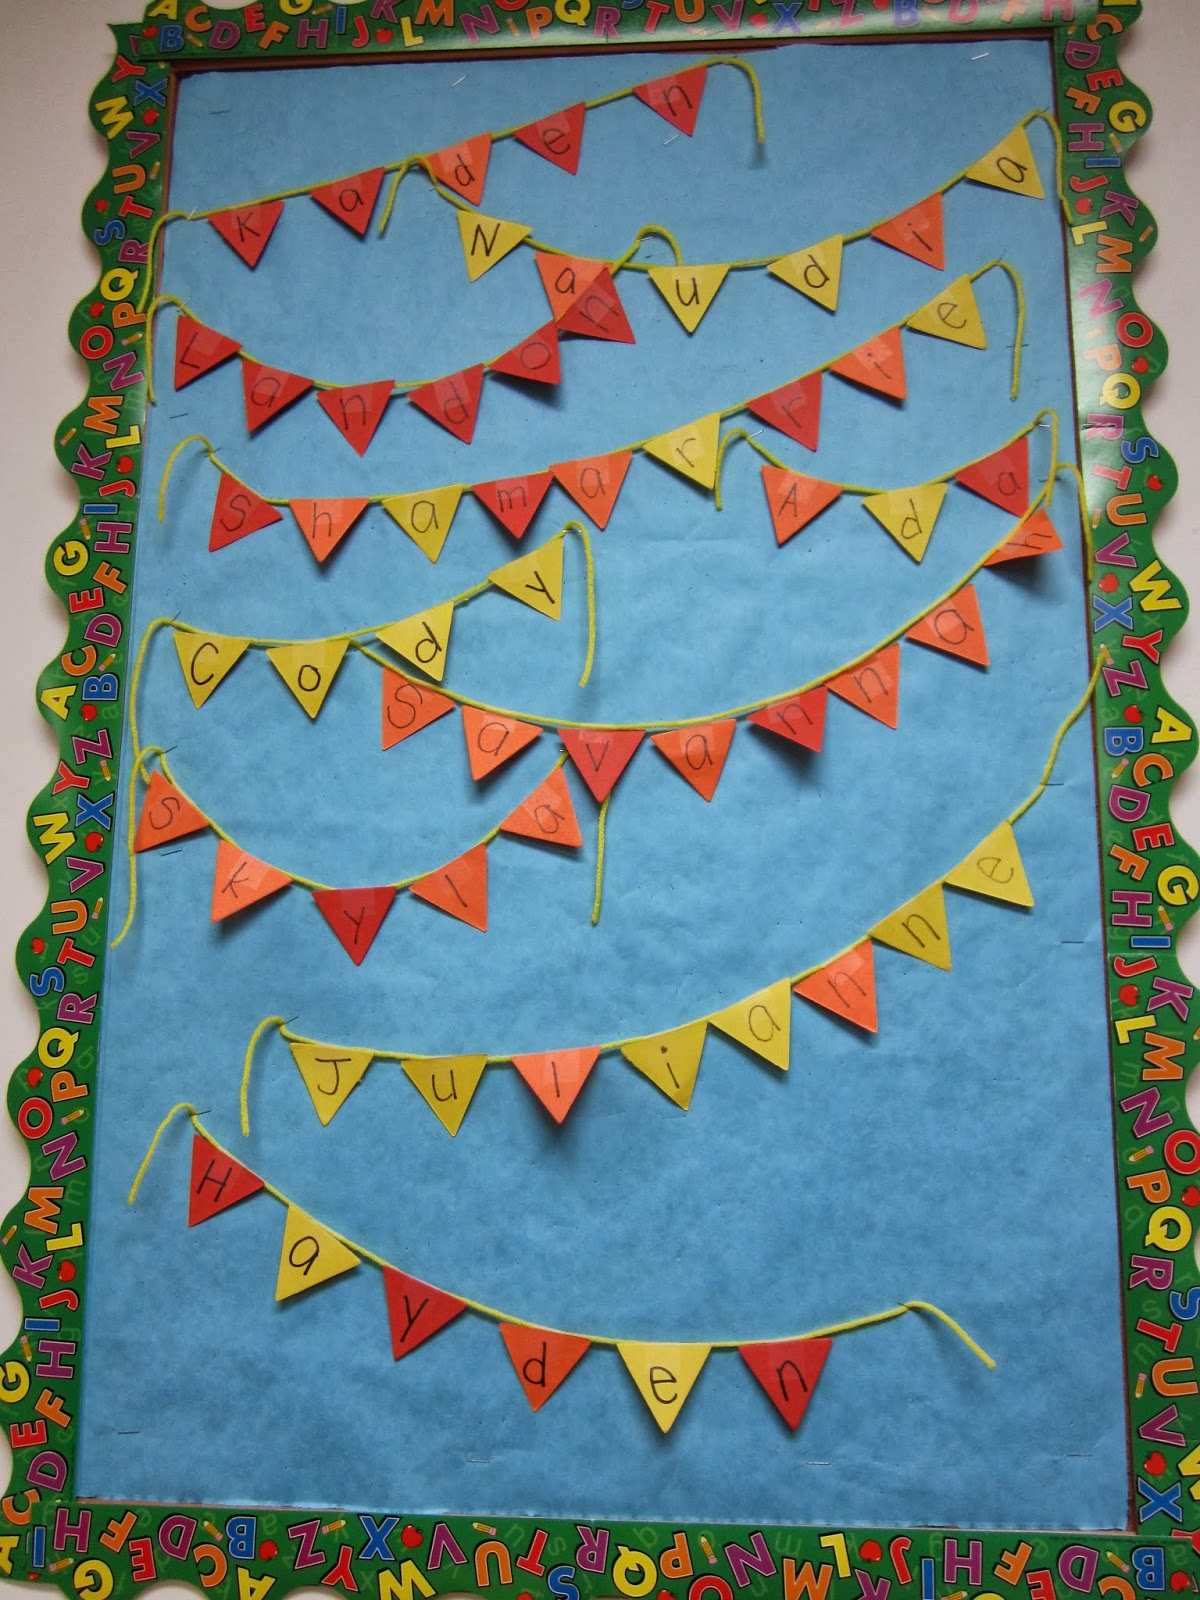 the pa-paw patch, circus name banners, circus theme